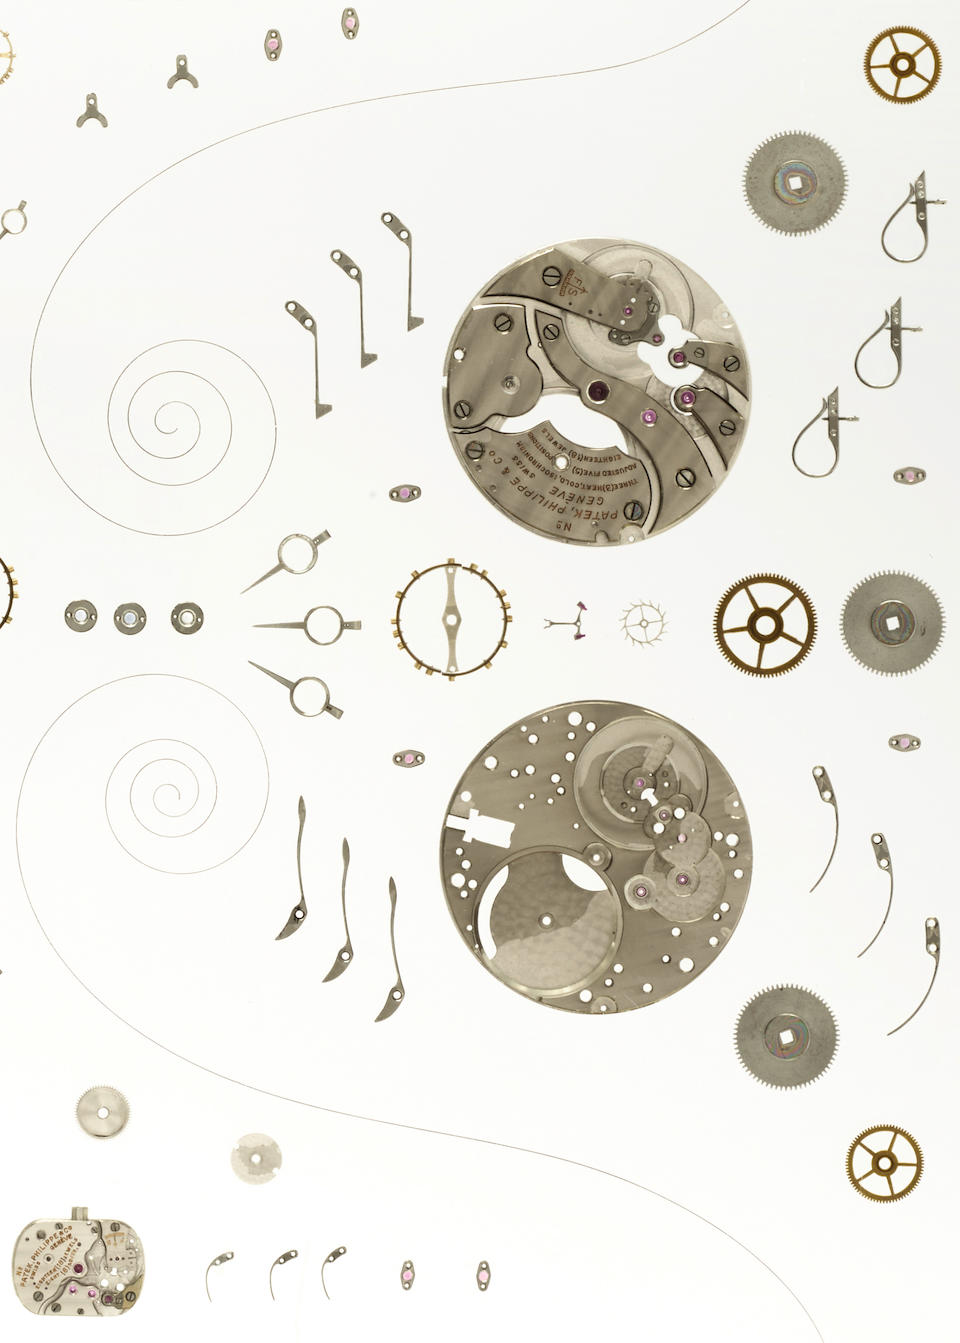 A fine group of four disassembled Patek Philippe movements displayed in an acrylic panel